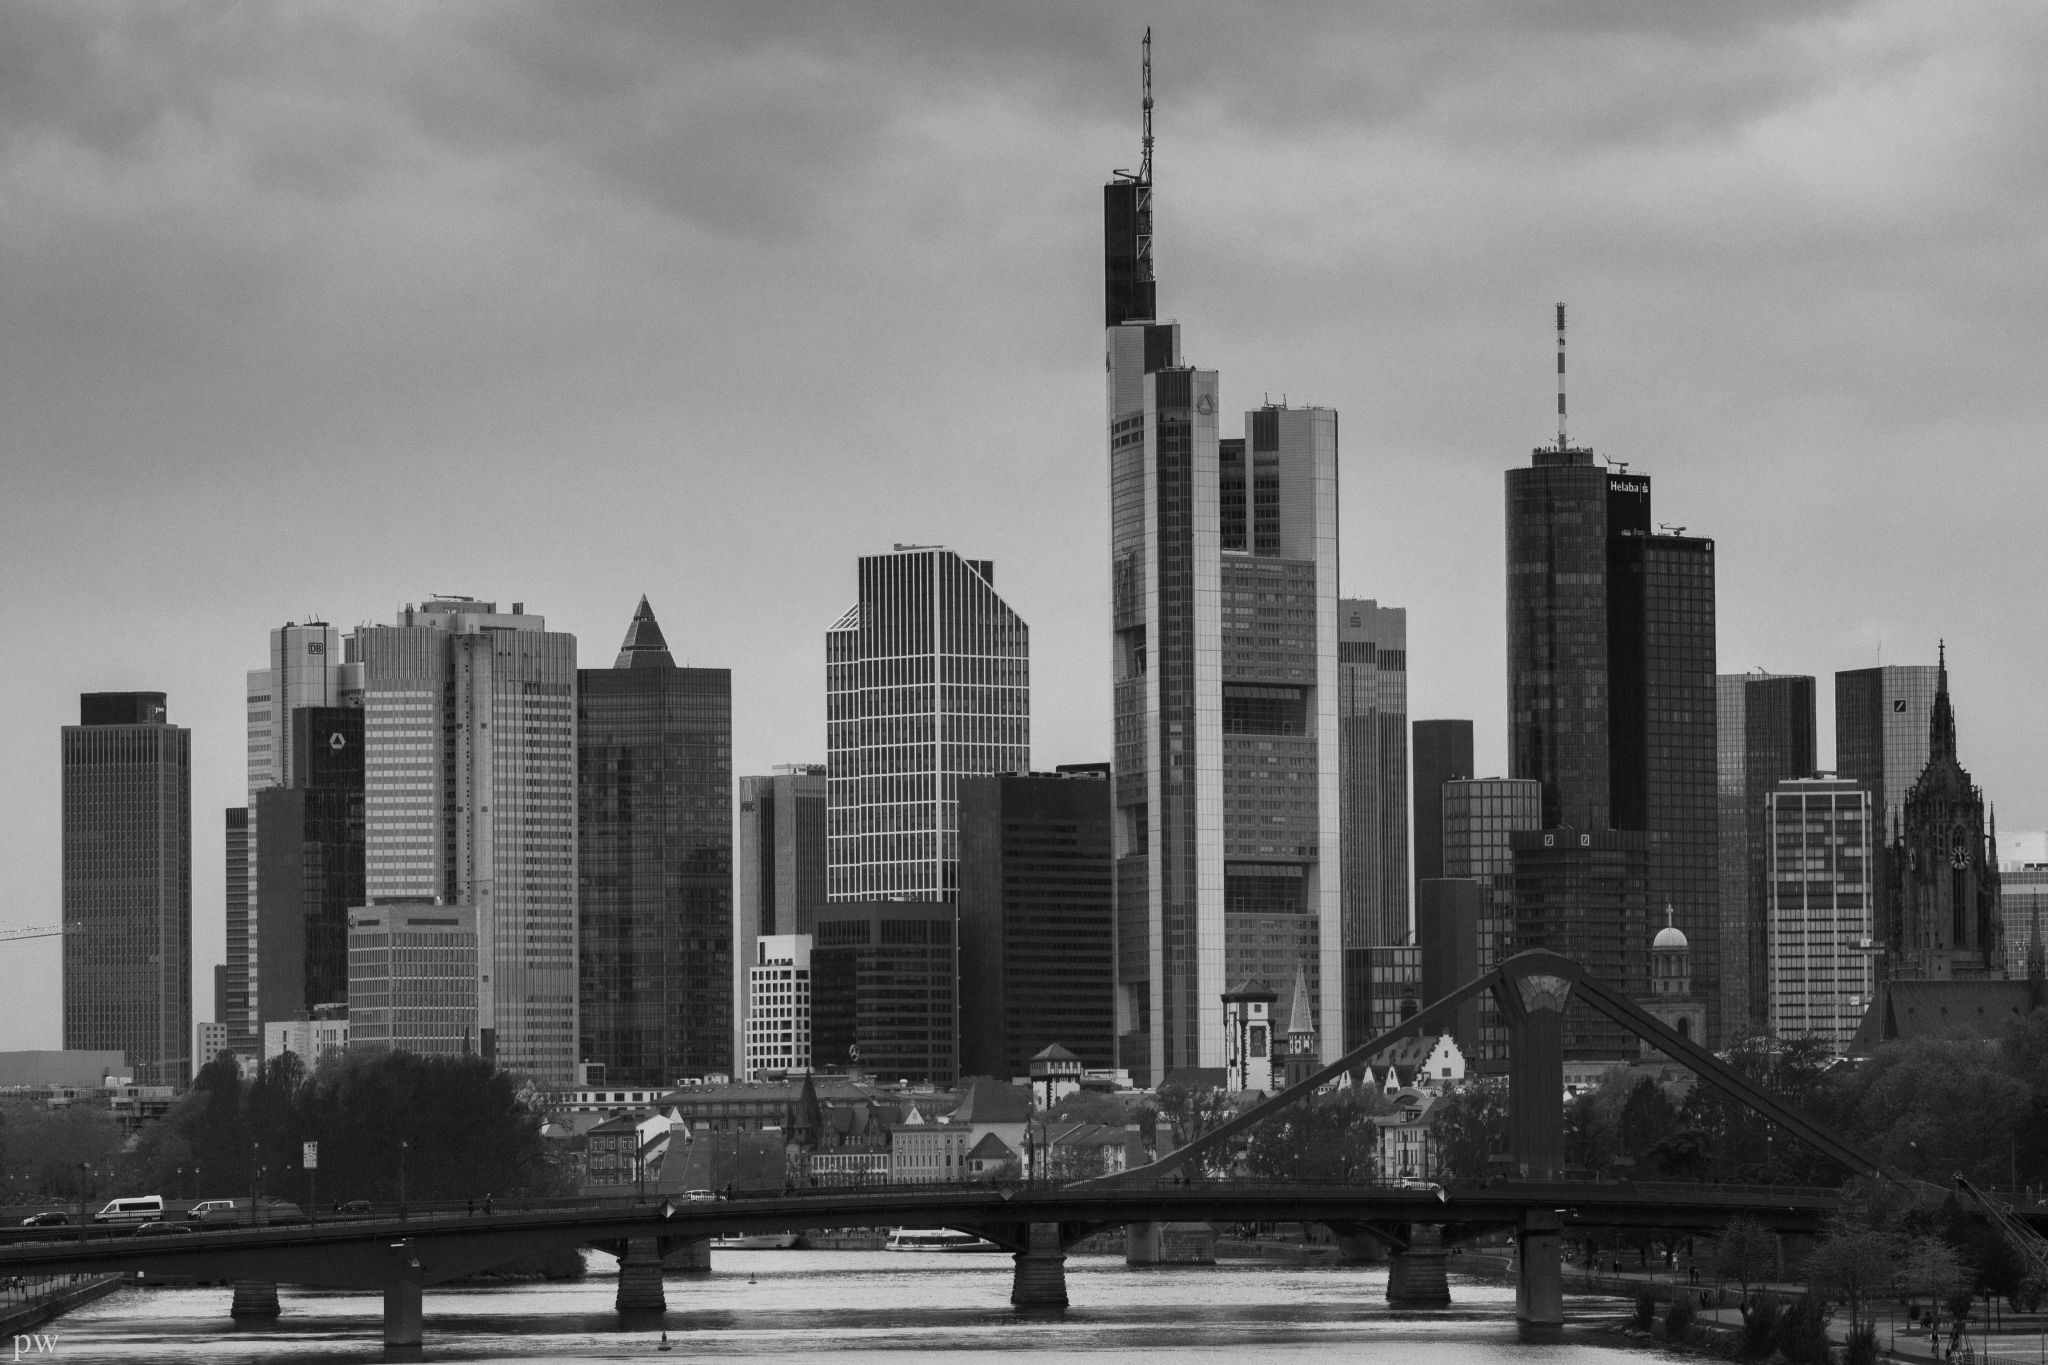 Skyline, Frankfurt am Main, Germany, Germany